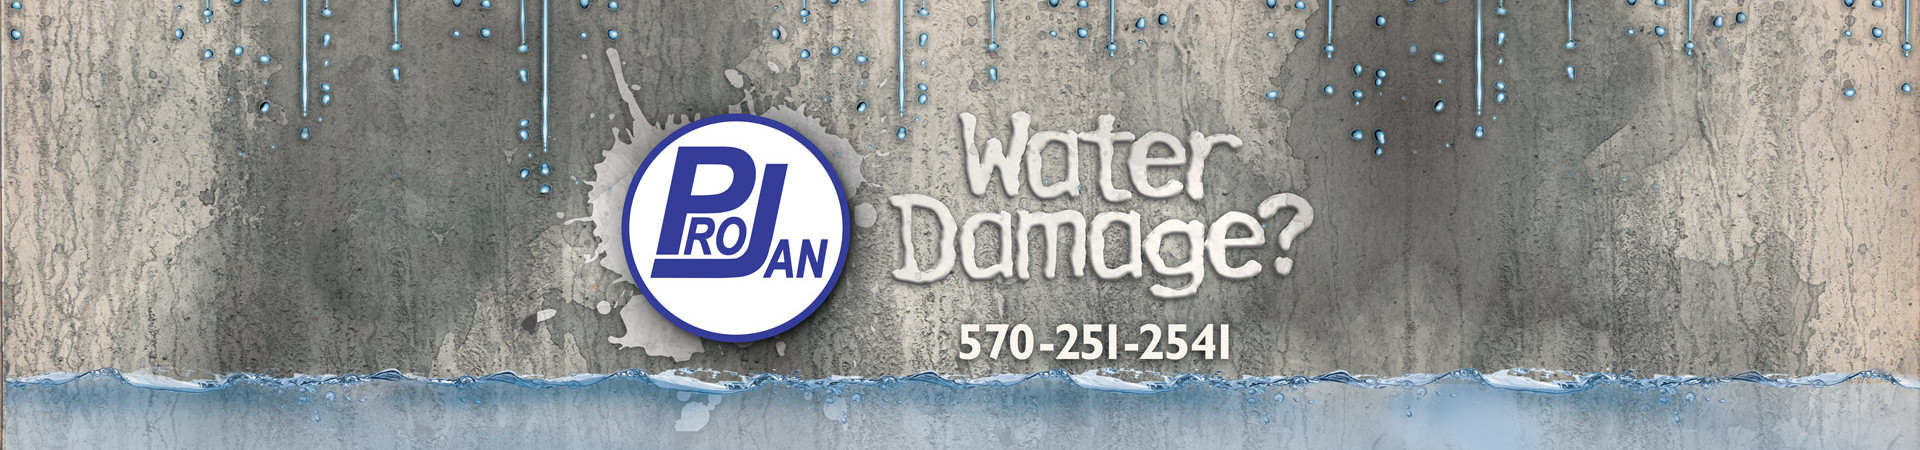 ProJan Water Damage Restoration